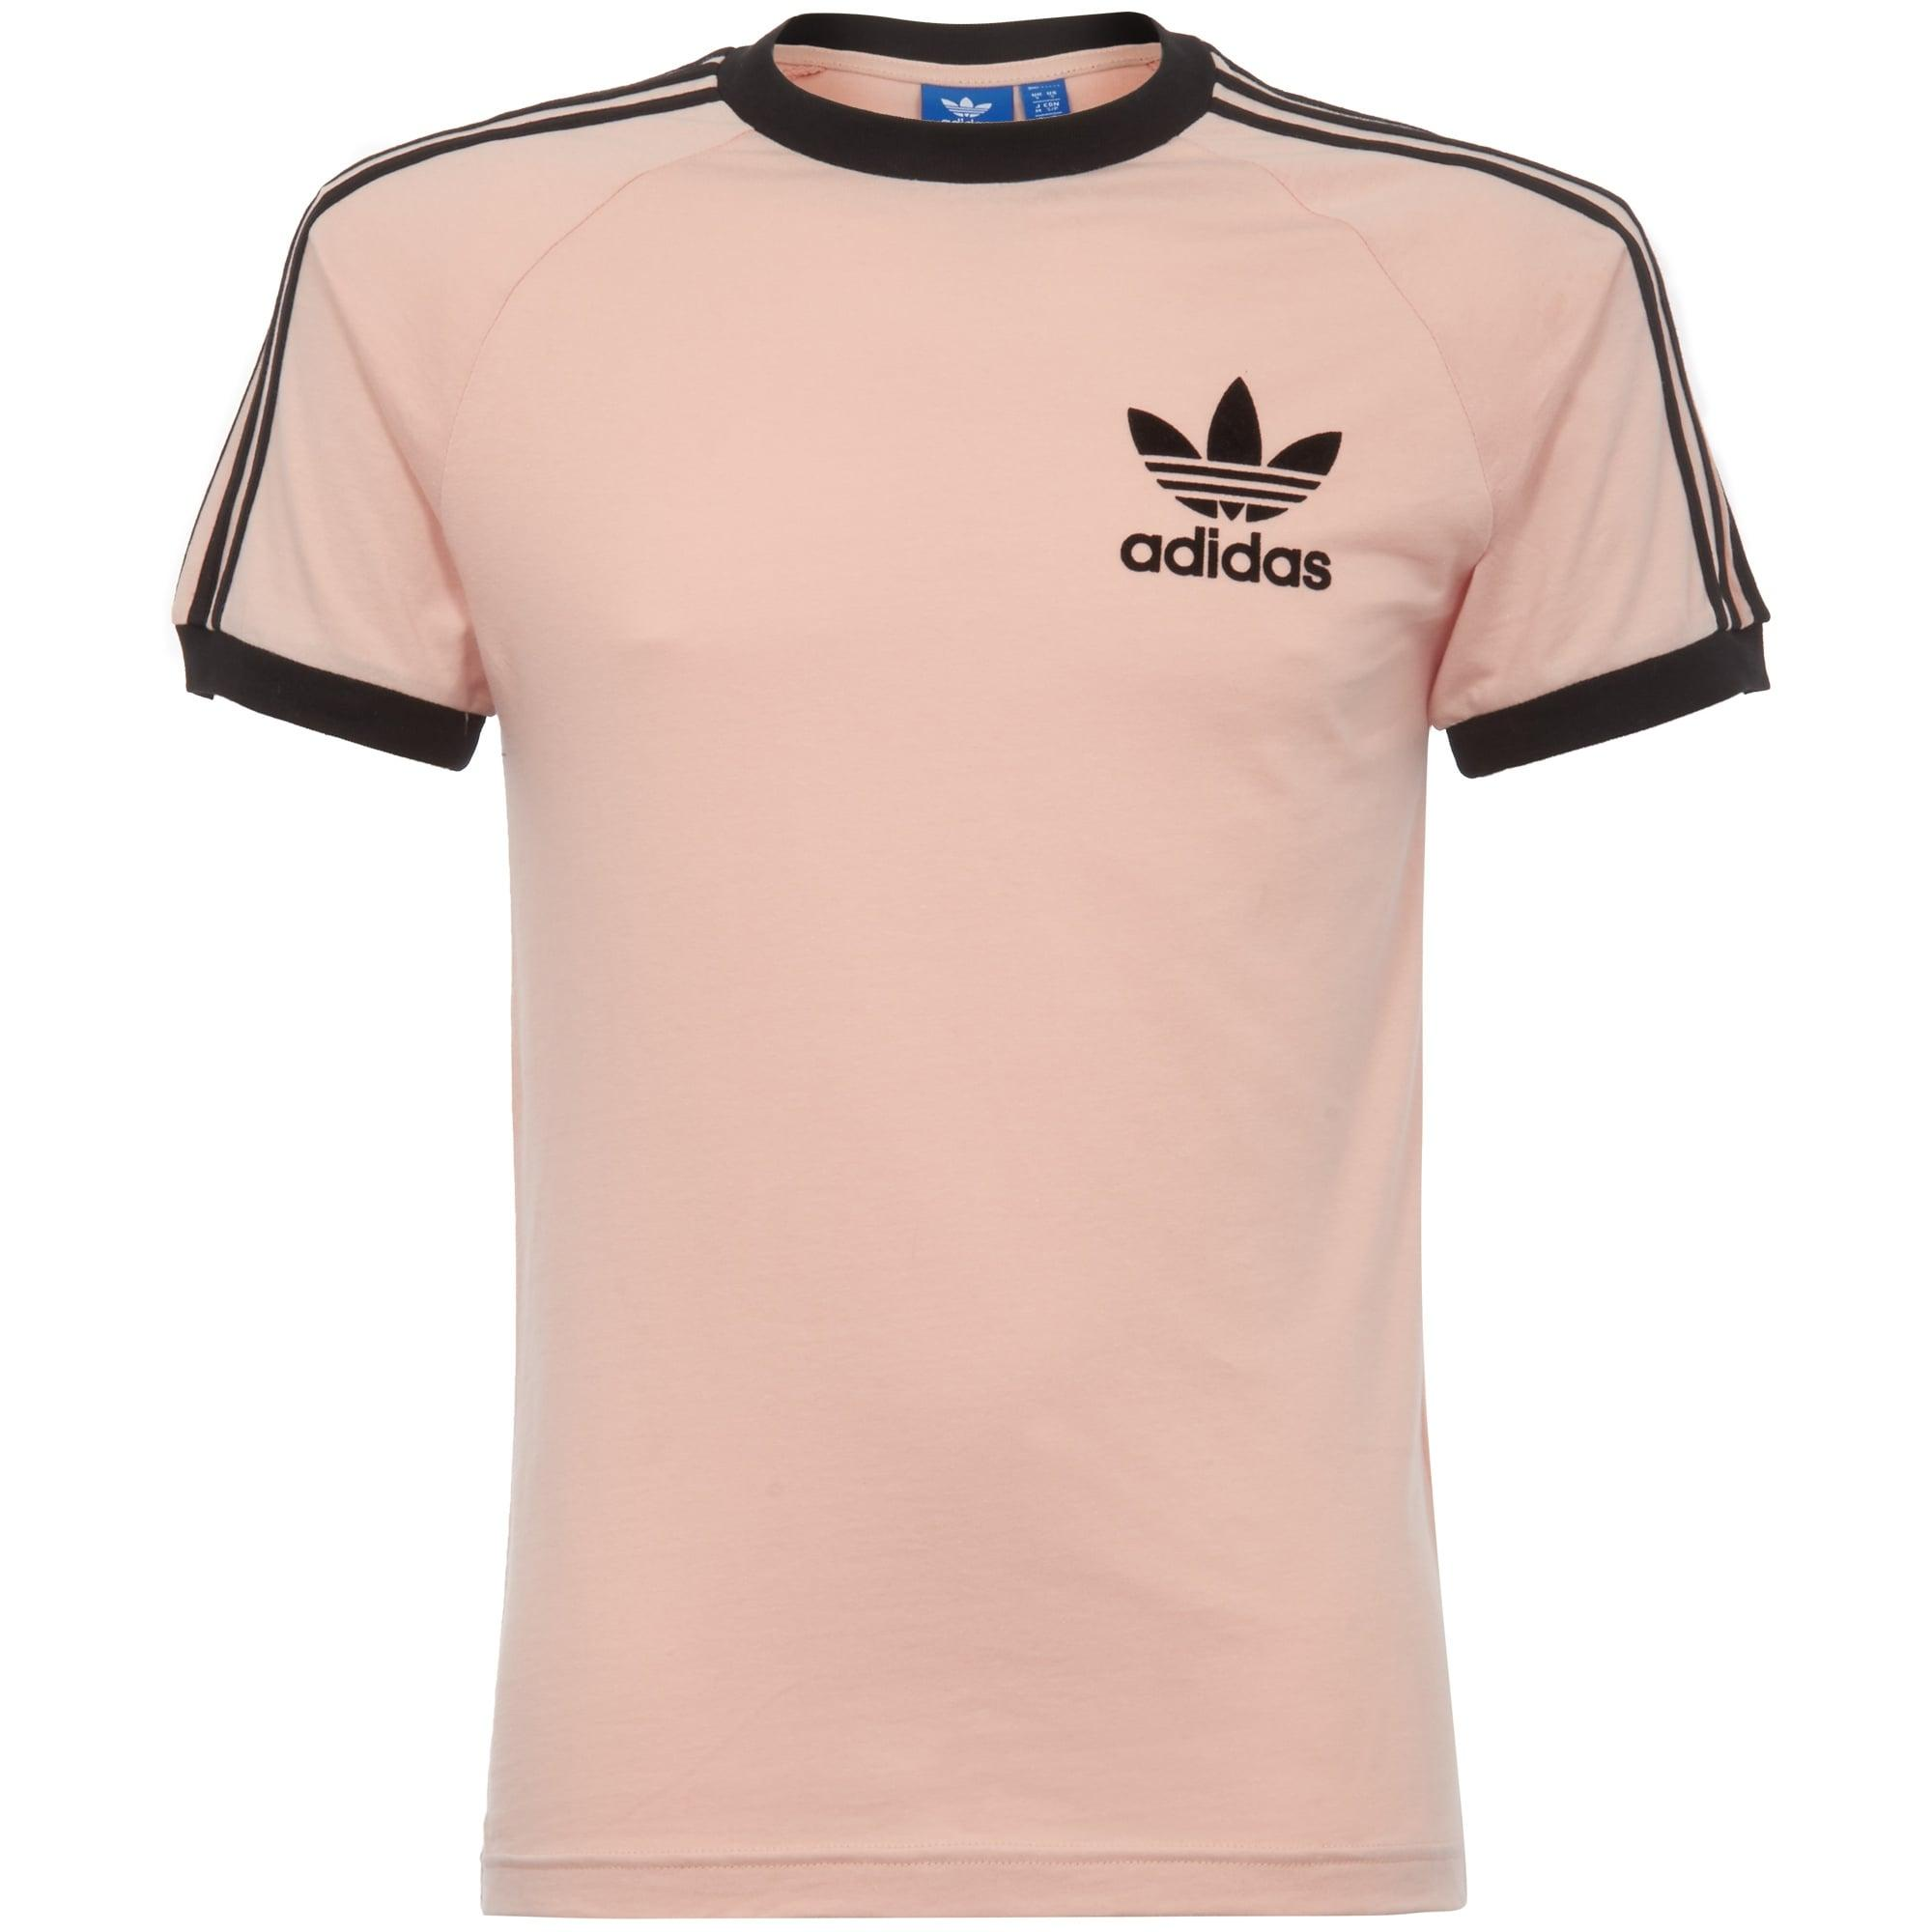 lyst adidas originals california t shirt in pink for men. Black Bedroom Furniture Sets. Home Design Ideas